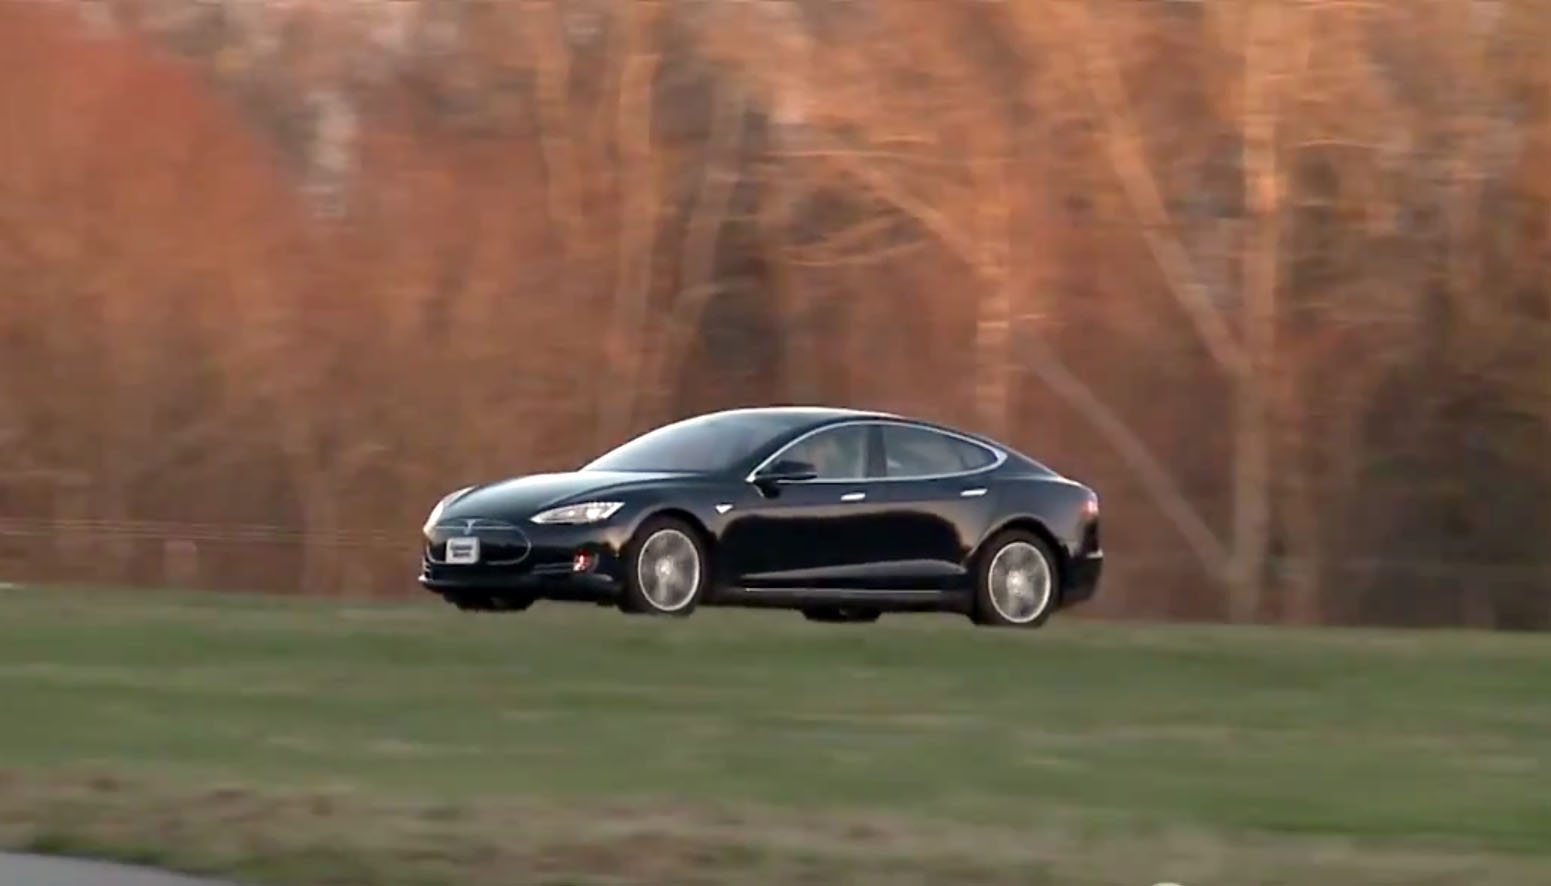 Tesla Model S earns top ratings from Consumer Reports